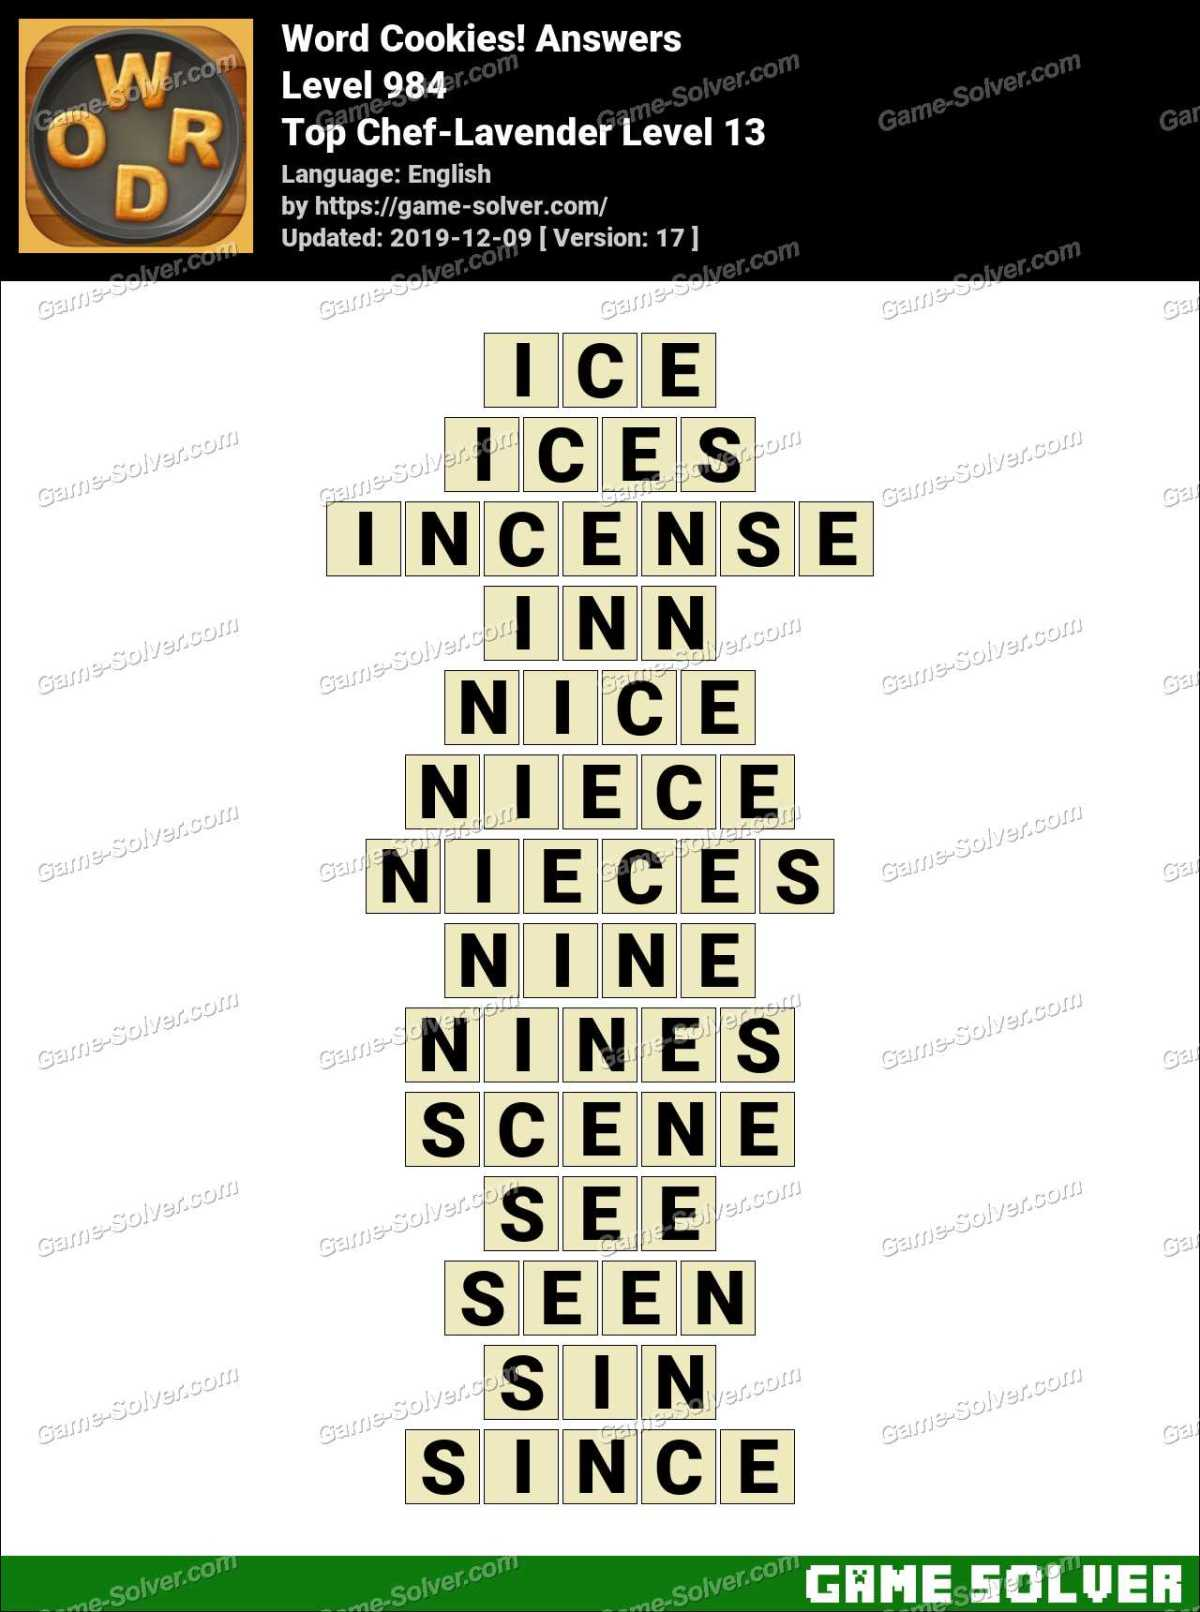 Word Cookies Top Chef-Lavender Level 13 Answers